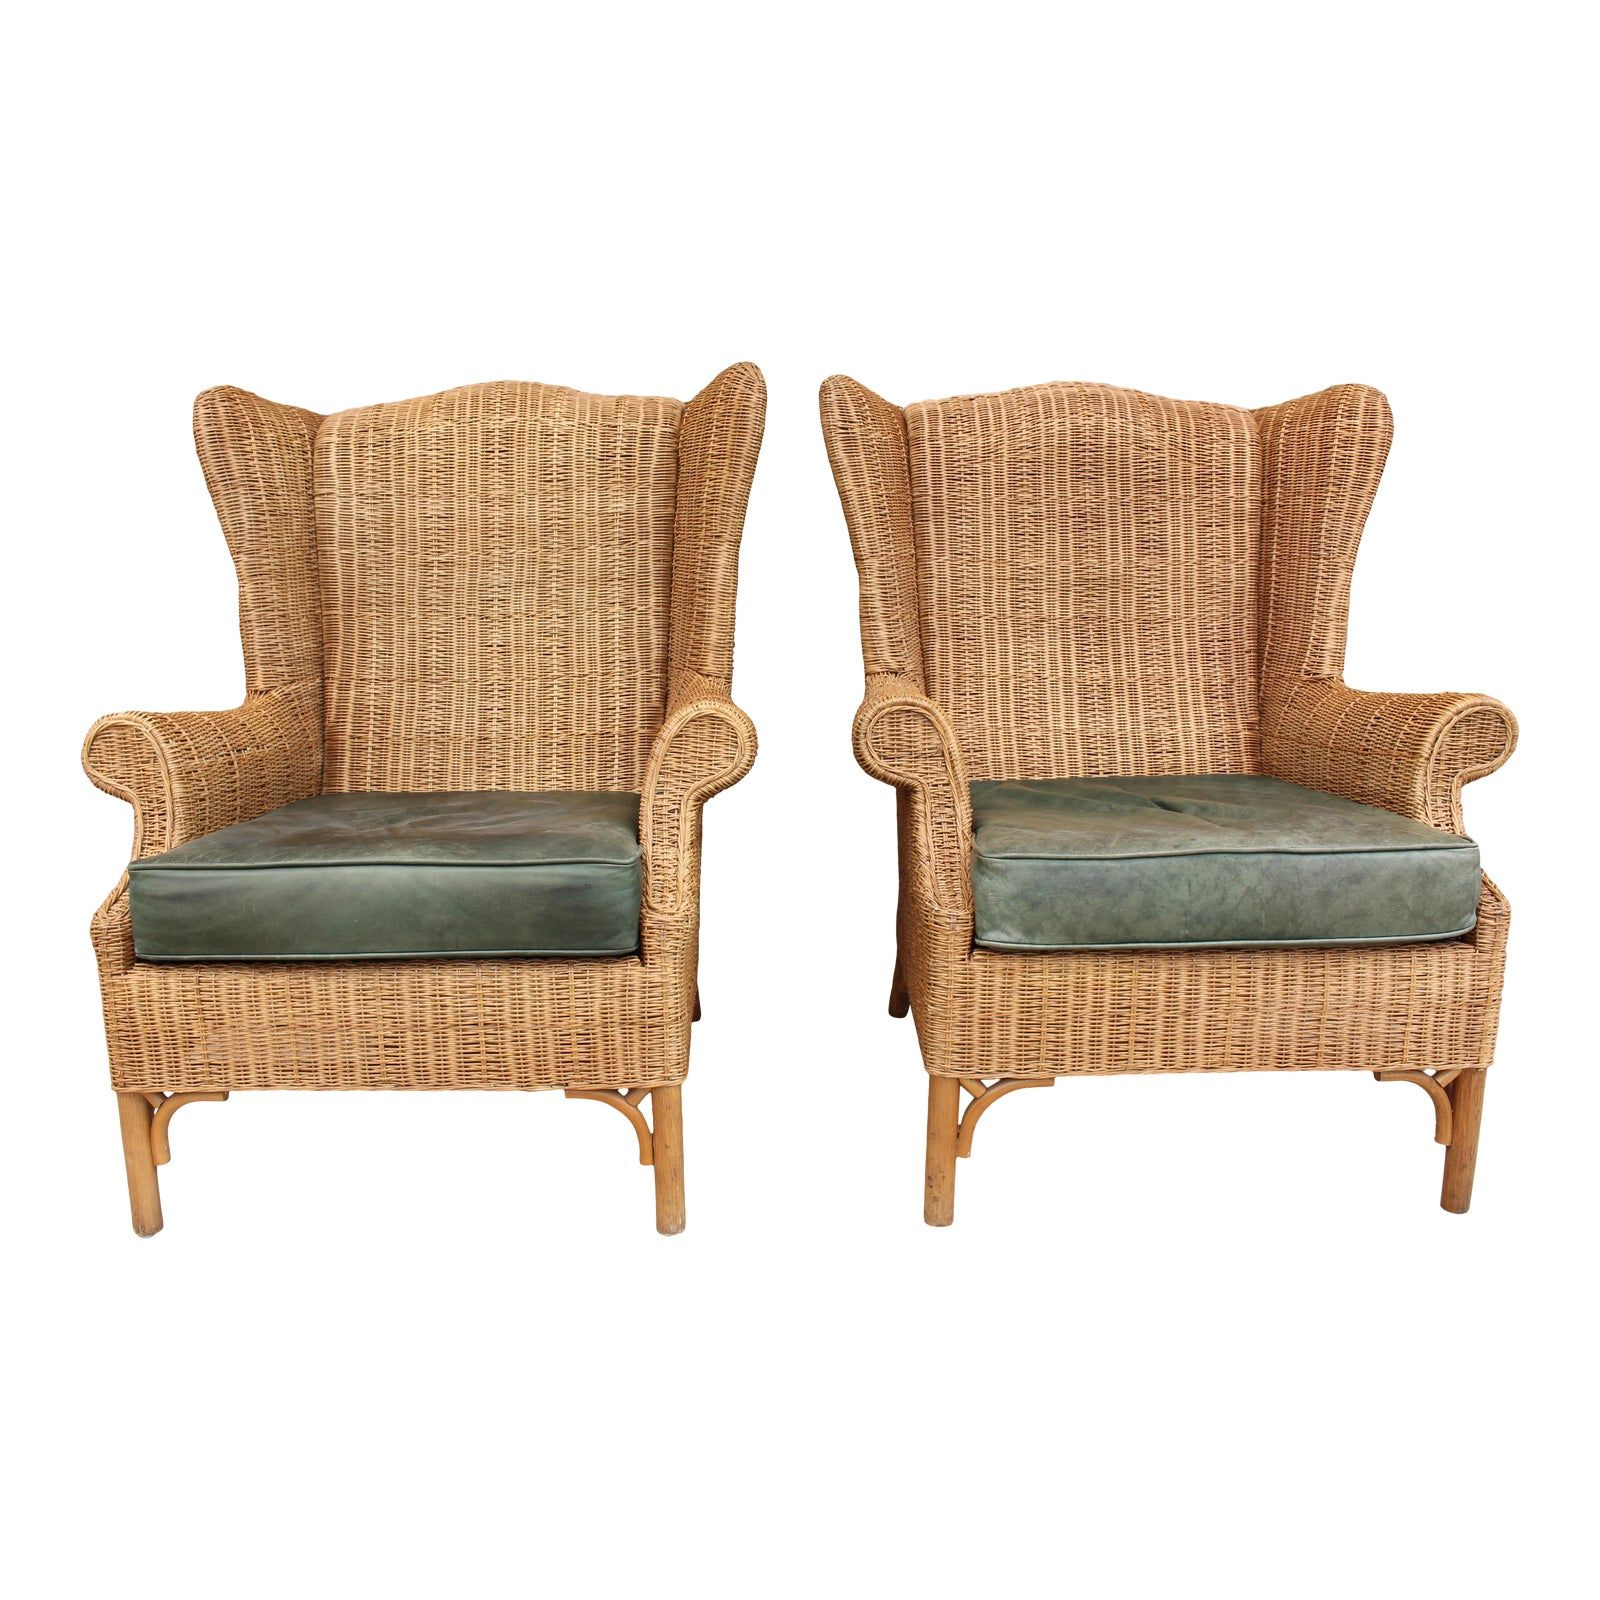 1970s Vintage Henry Link Woven Wicker Wingback Chairs A Pair